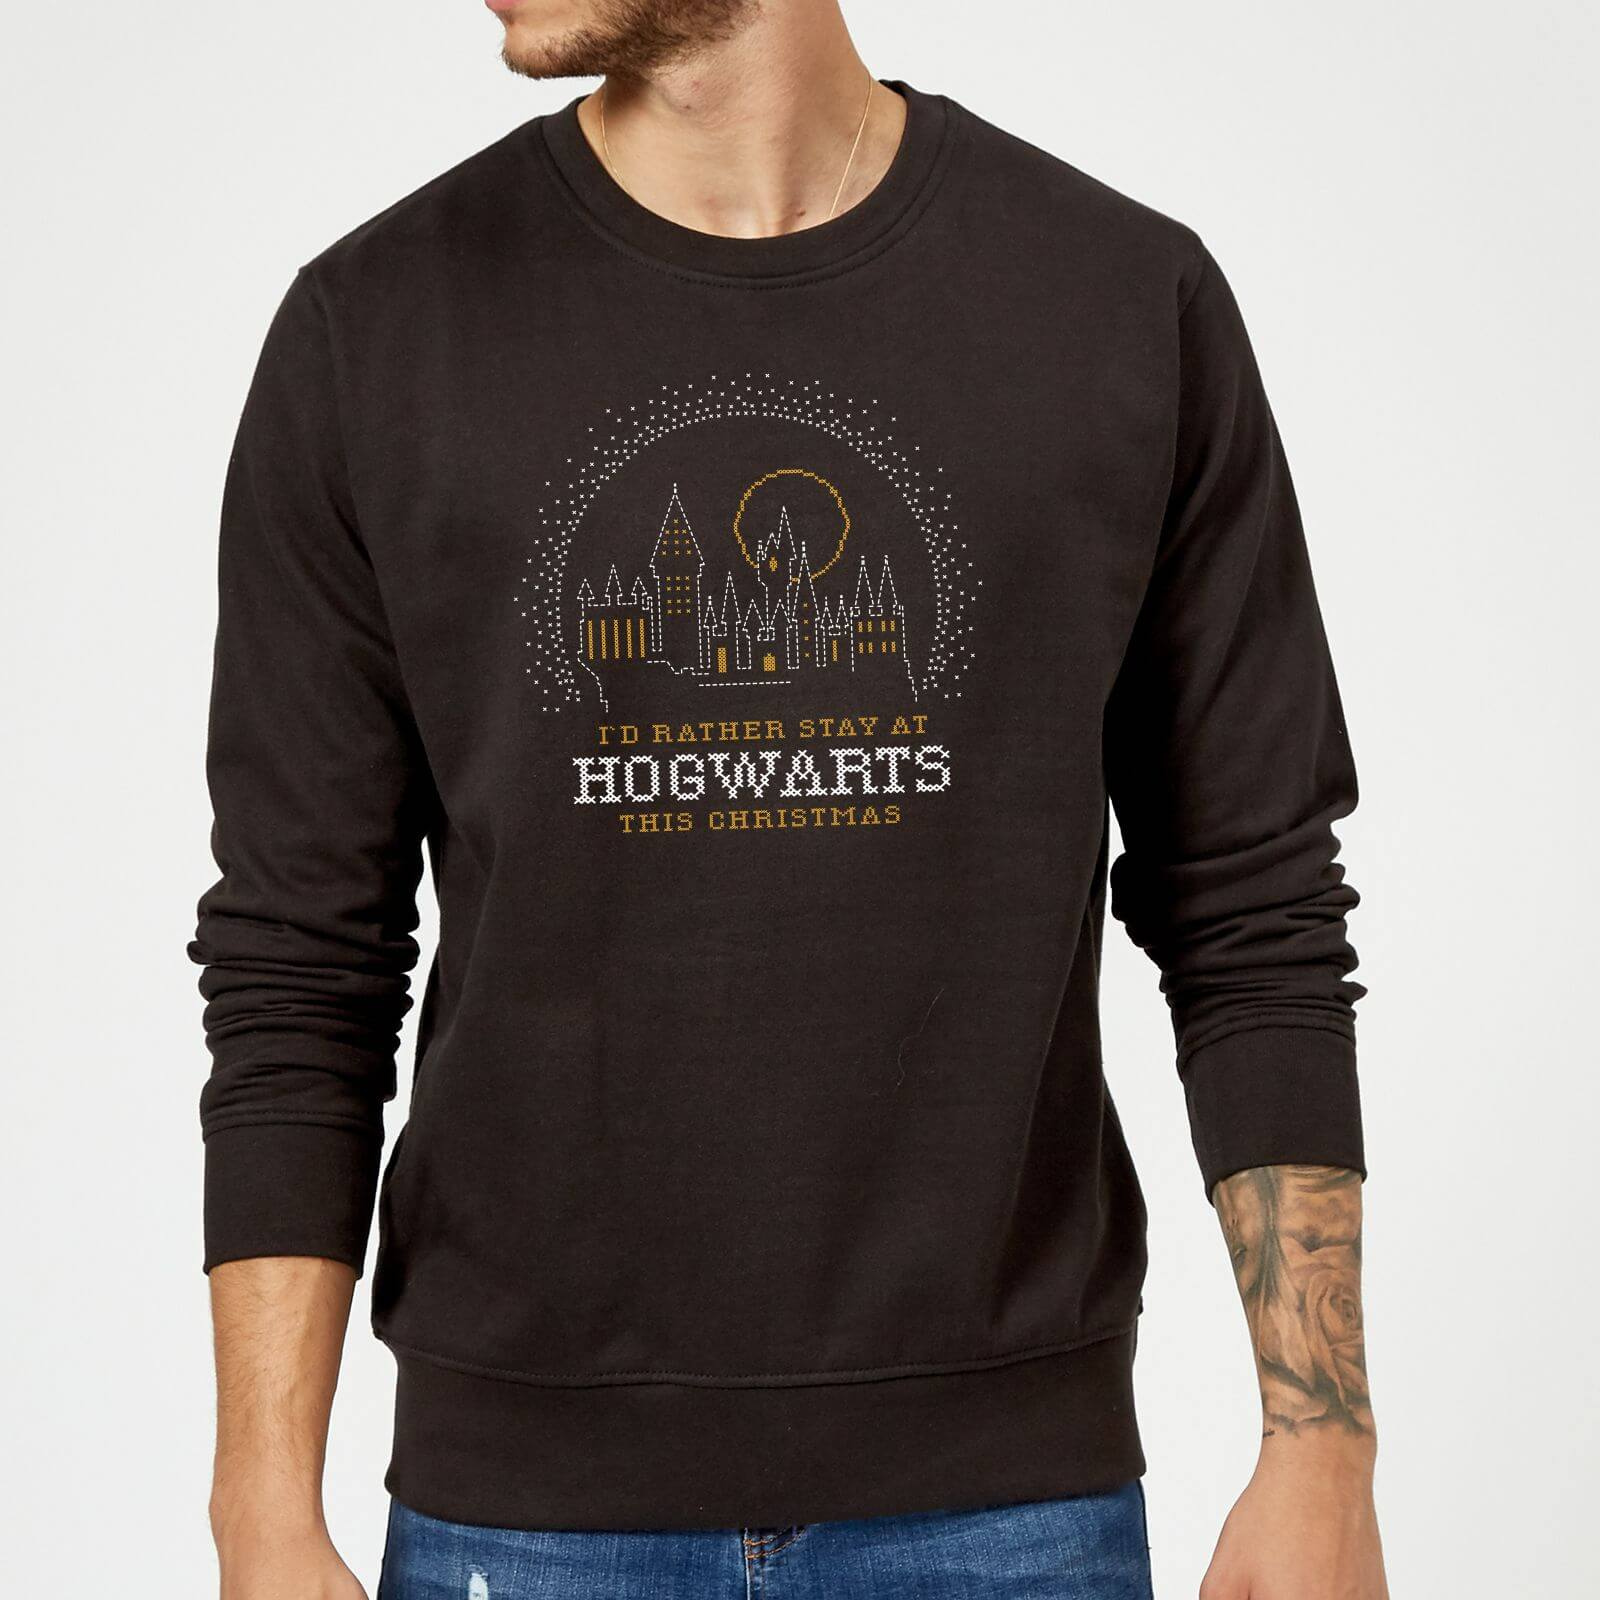 Harry Potter I'd Rather Stay At Hogwarts Christmas Sweatshirt - Black - S - Negro de Harry Potter